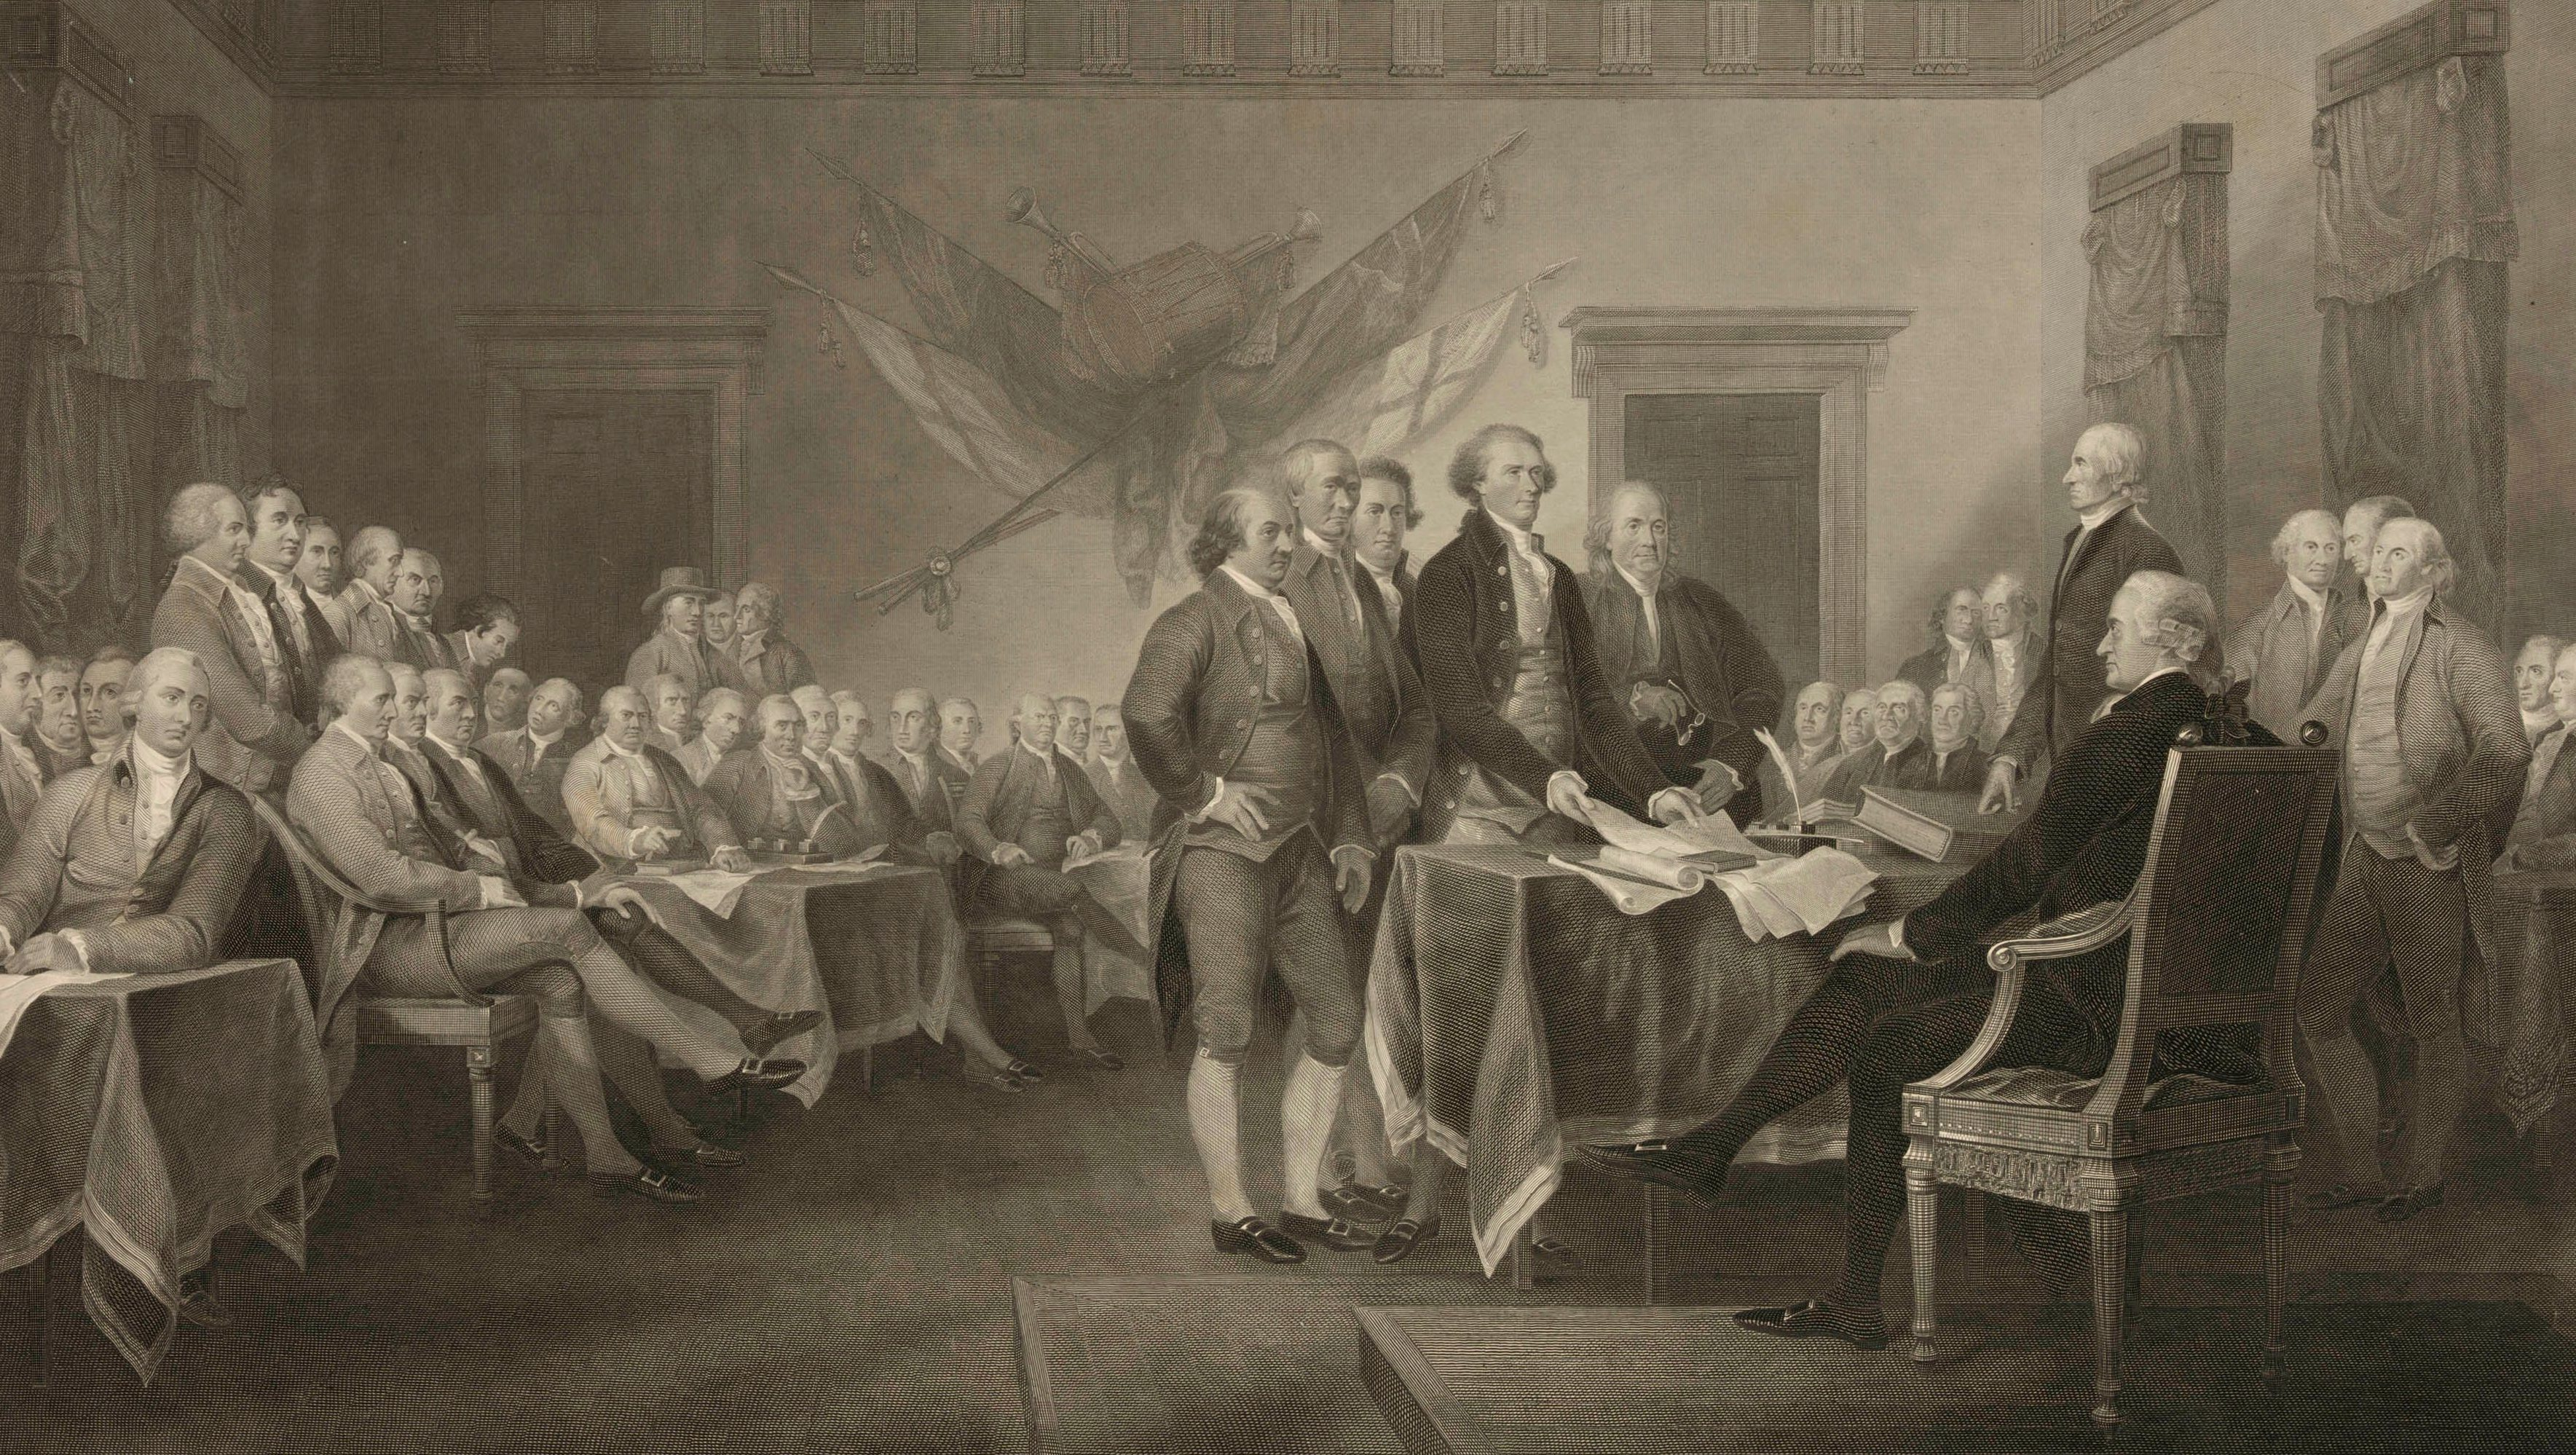 """This 1876 engraving by W.L. Ormsby shows a version of the painting """"Declaration of Independence, July 4th, 1776"""" by John Trumbull. To many, the notion of white men being marginalized in the early 21st century is ludicrous, their history seemingly a study in power and privilege, from the Founding Fathers to the """"Mad Men"""" era and up through their continued dominance in boardrooms and government. Yet, they have suffered some real losses, even as they maintain advantages. (W.L. Ormsby/Library of Congress via AP)"""